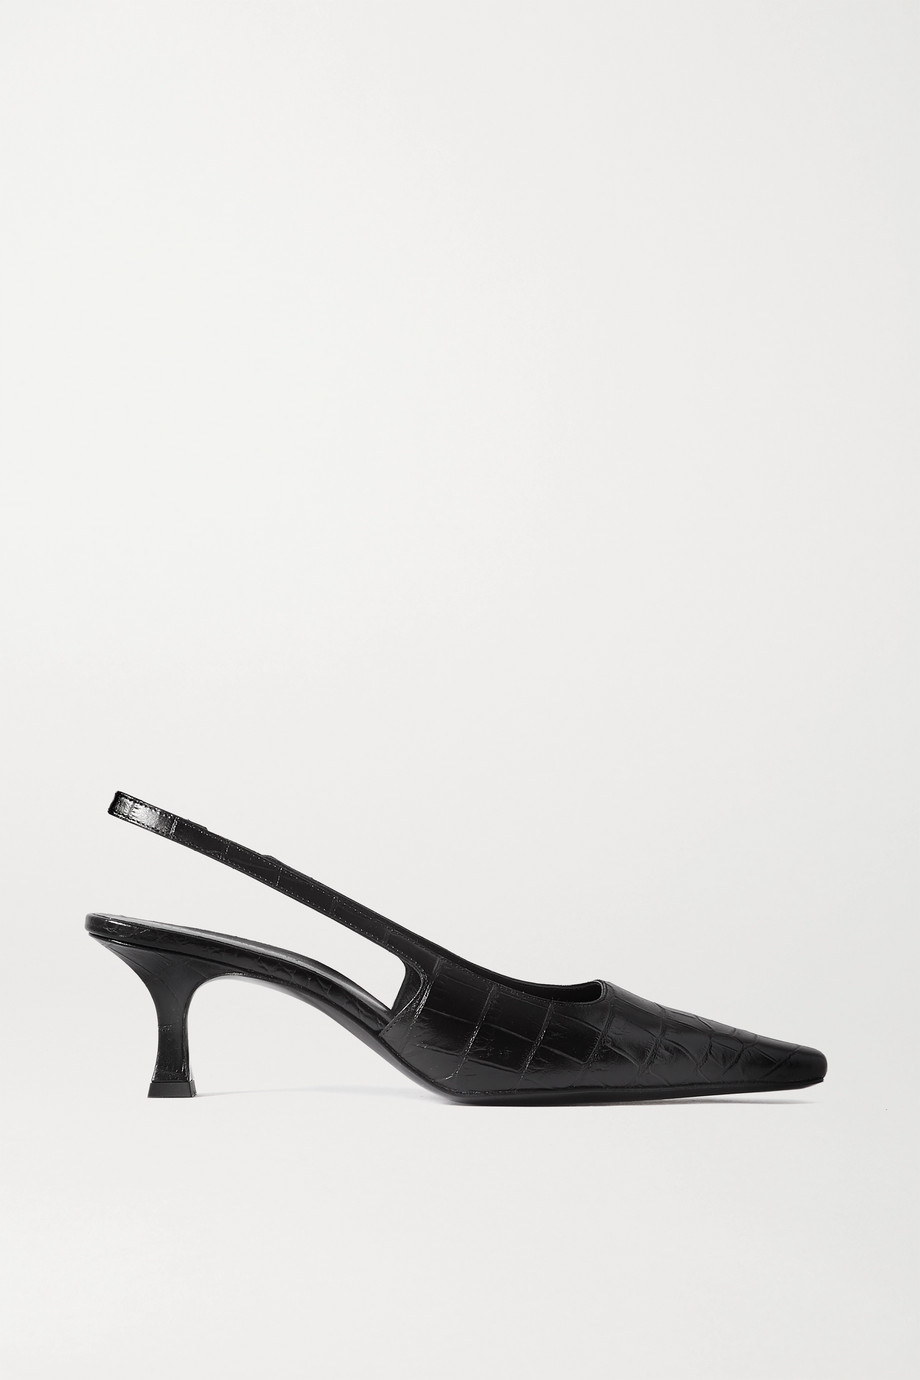 Magda Butrym Croc-effect leather slingback pumps